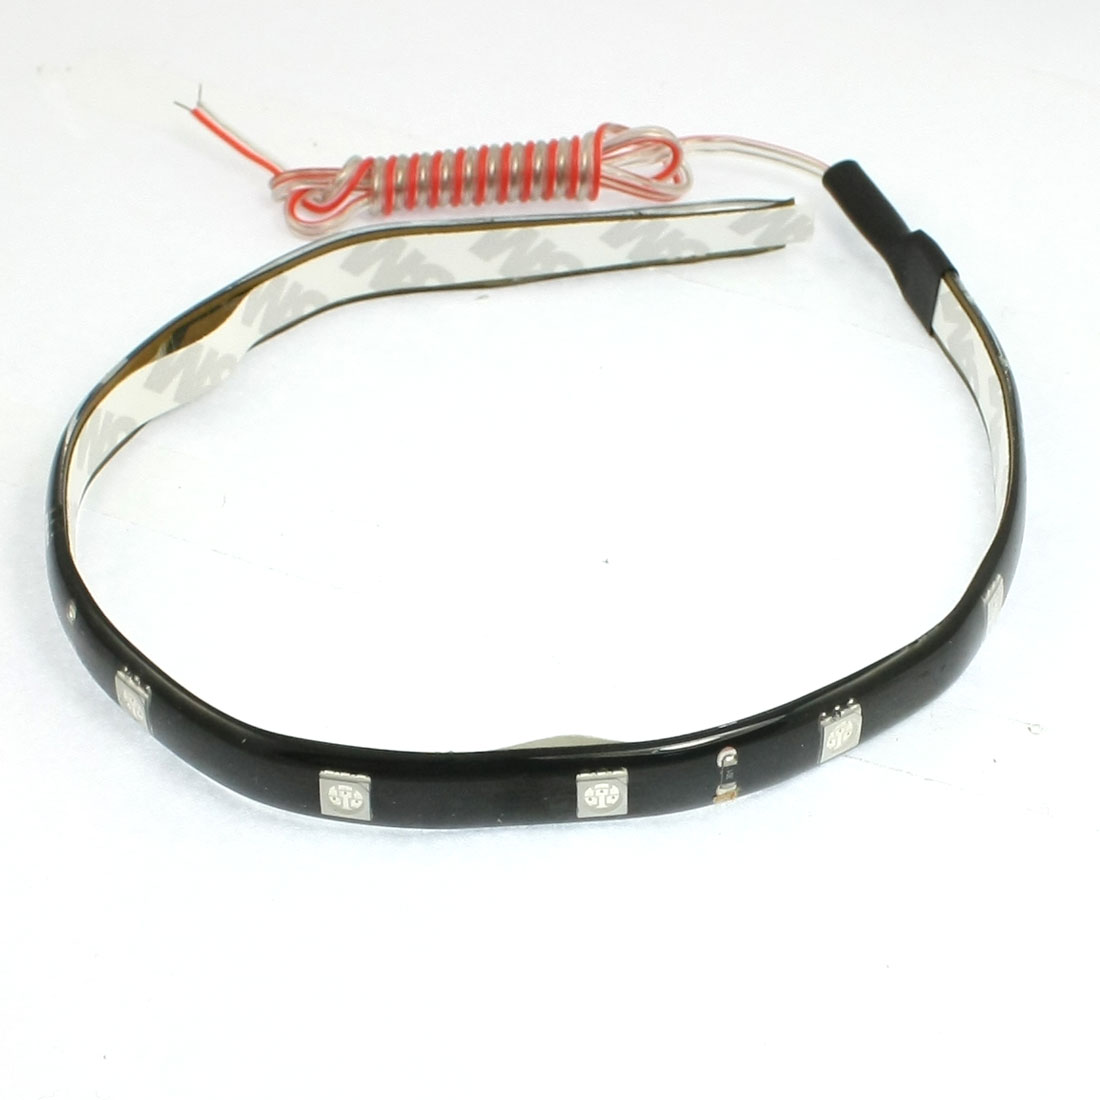 Car Interior Red 5050 SMD 12 LED Flexible Strip Bar Light Lamp 30cm DC 12V